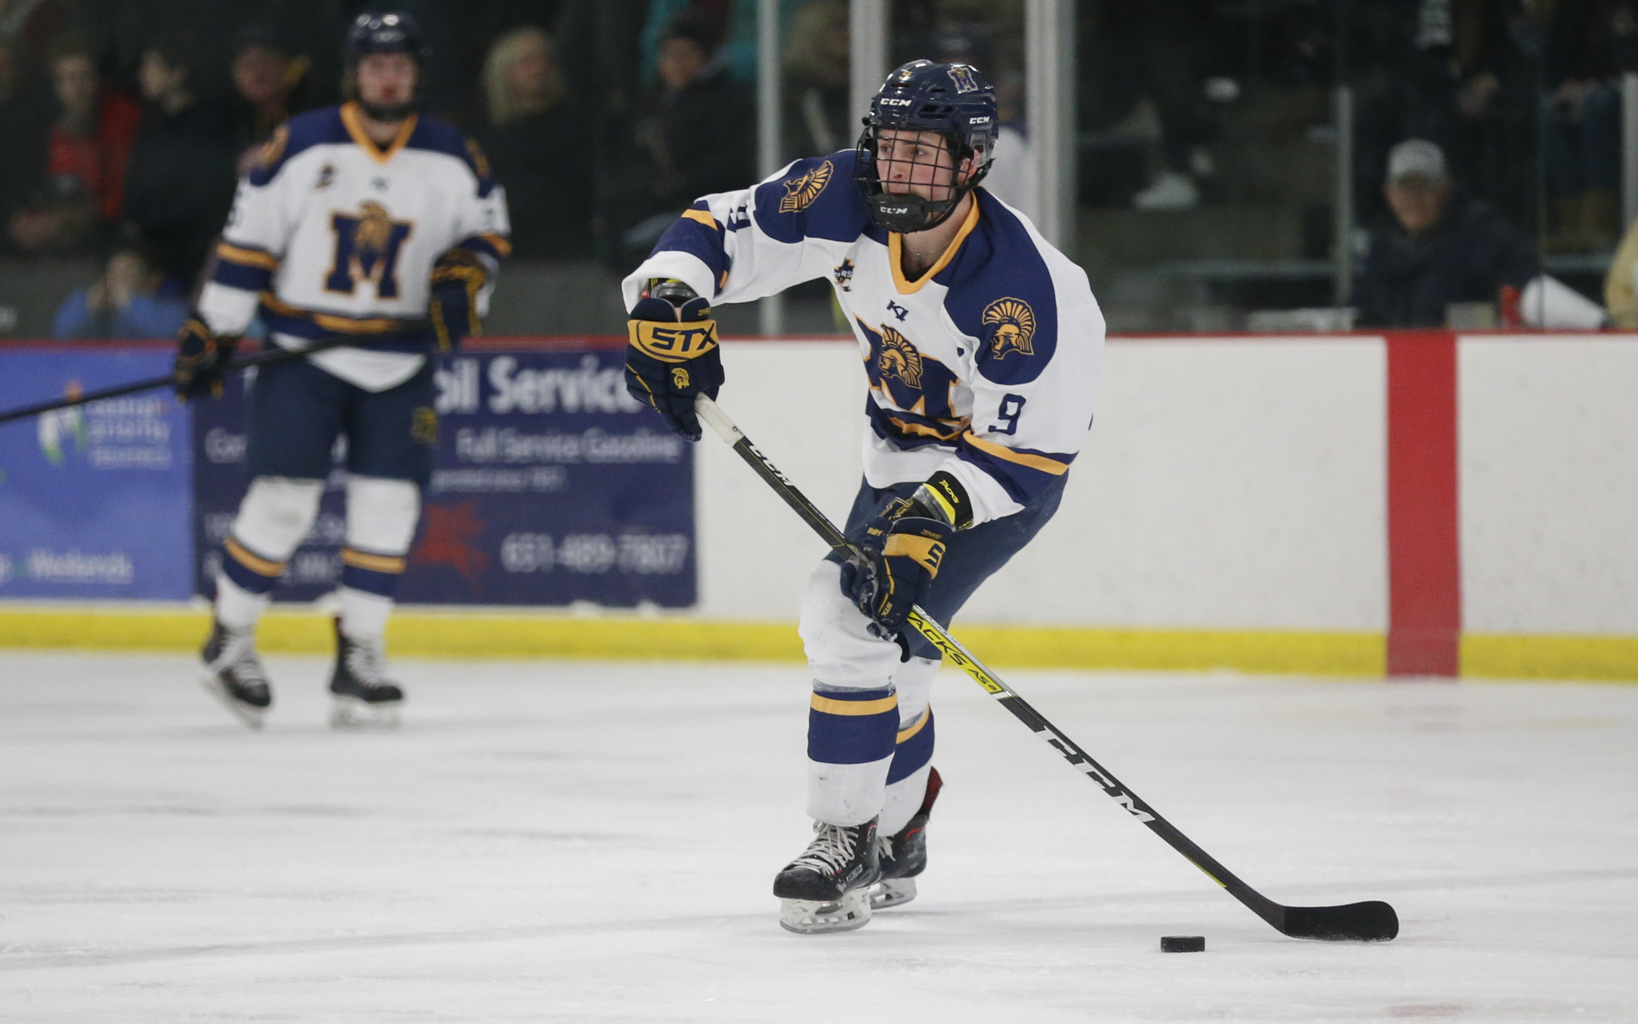 Mahtomedi's Nikolai Dulak (9) sends a pass across the ice during Friday night's game against South St. Paul. Dulak had a goal and two assists in the Zephyrs' 5-1 victory over the Packers in Roseville. Photo by Jeff Lawler, SportsEngine